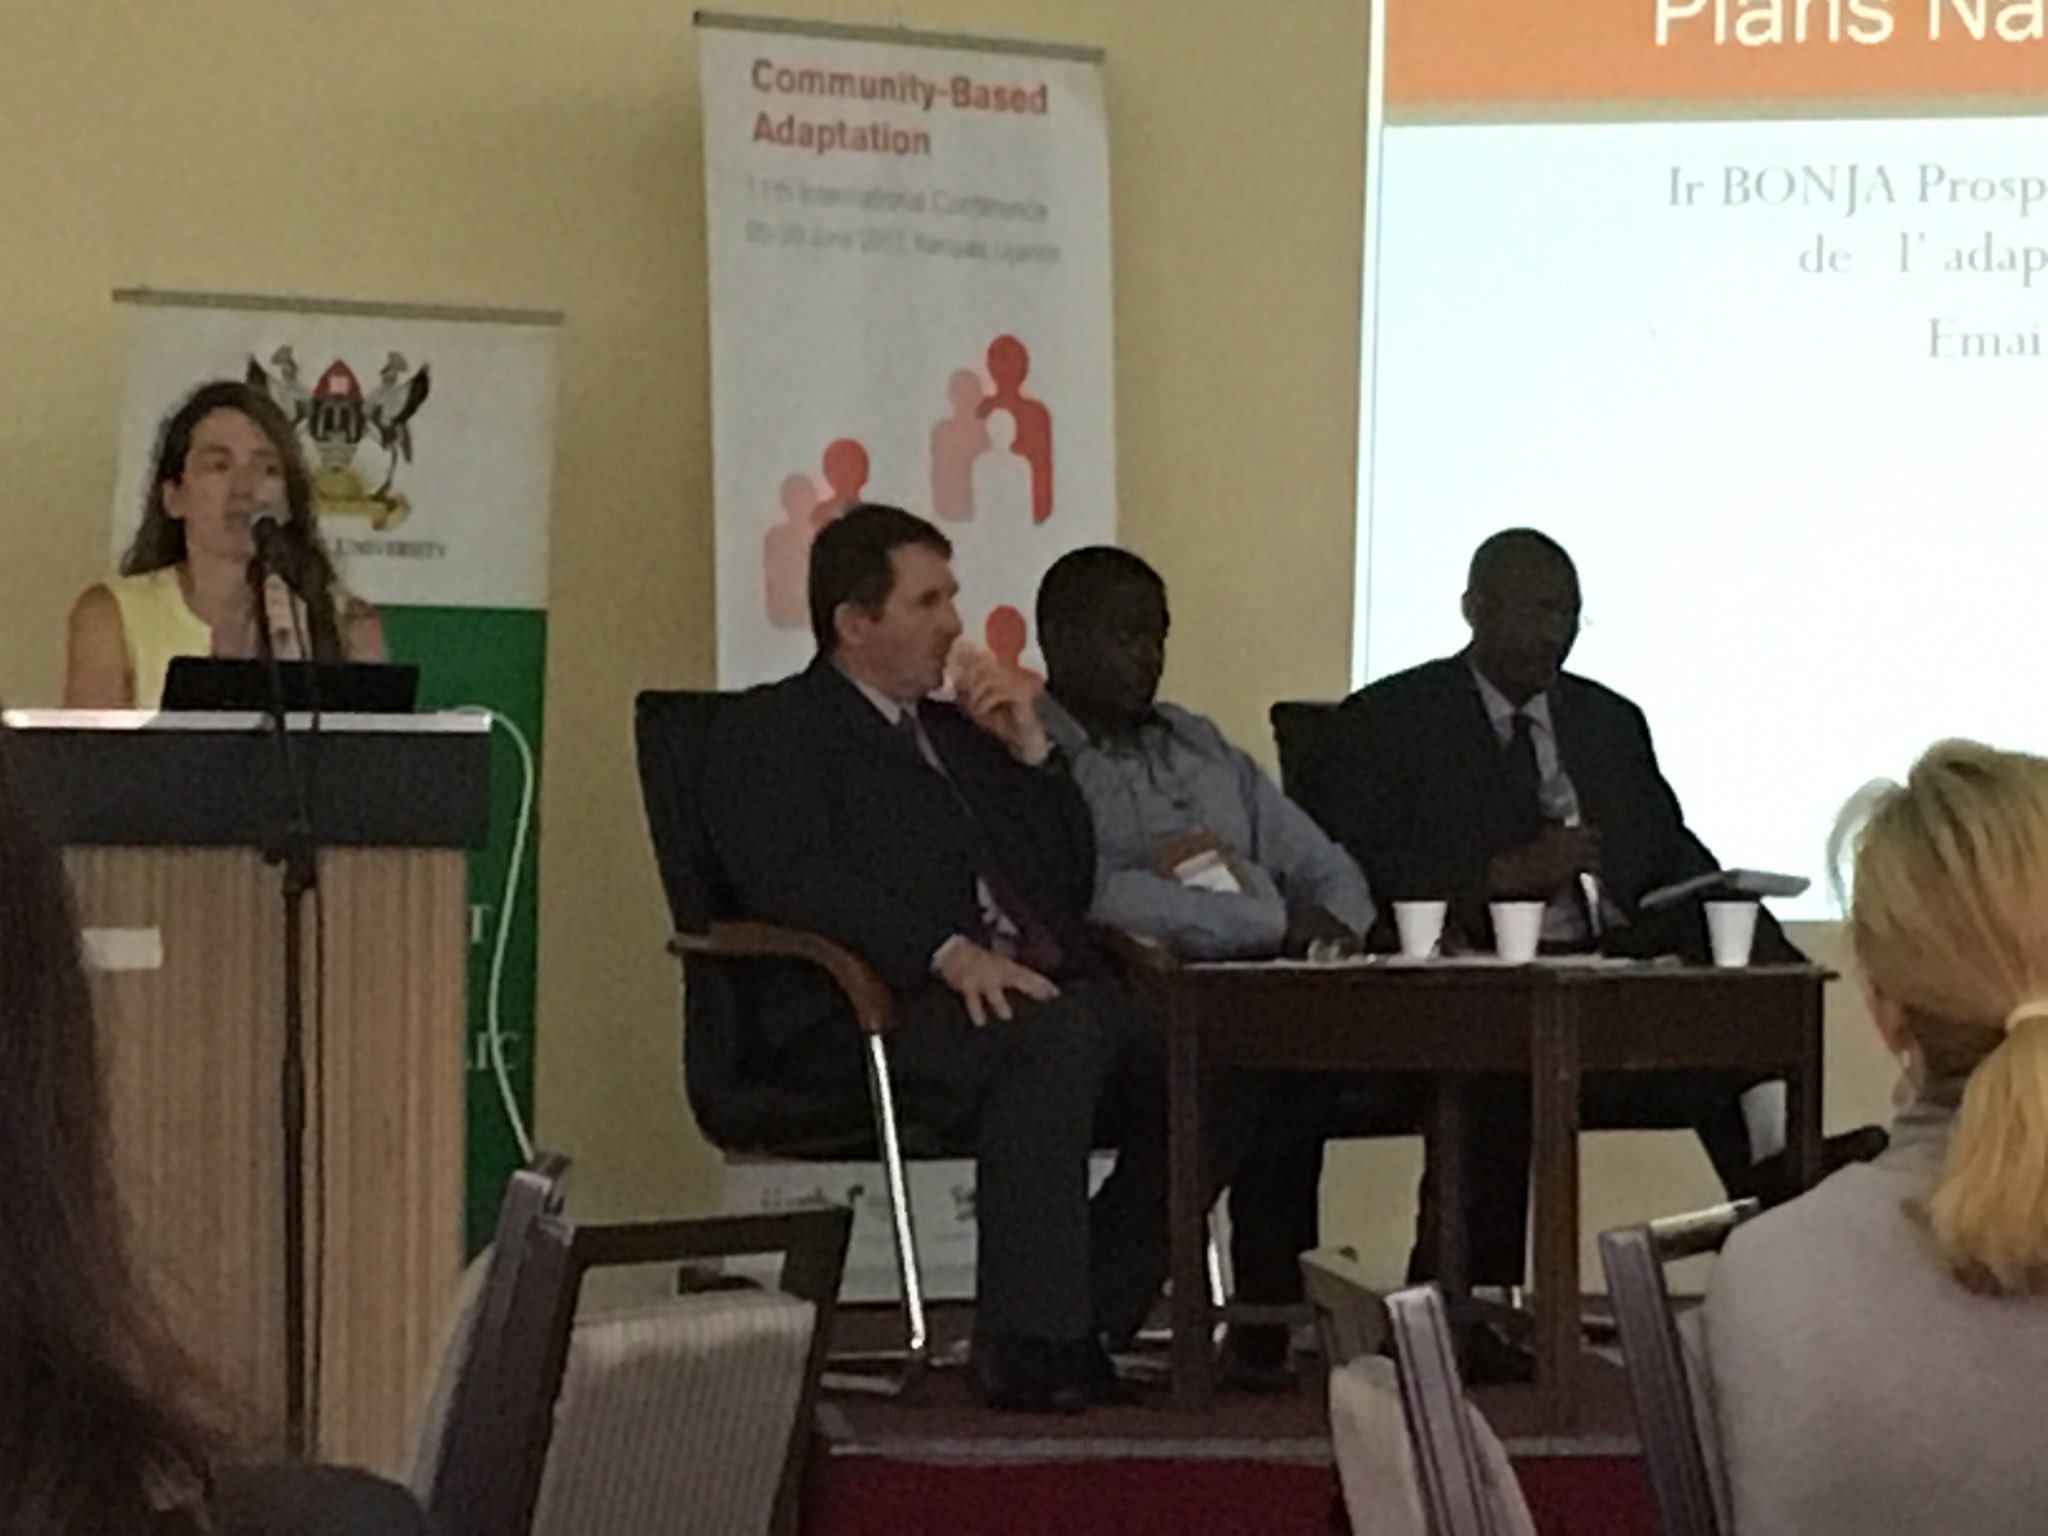 C'est genial! Thoughtful mapping+inclusion of vulnerable communities +alignment 2 local plans in the #Burundi NAP #CBA11 https://t.co/y4p49tIrju